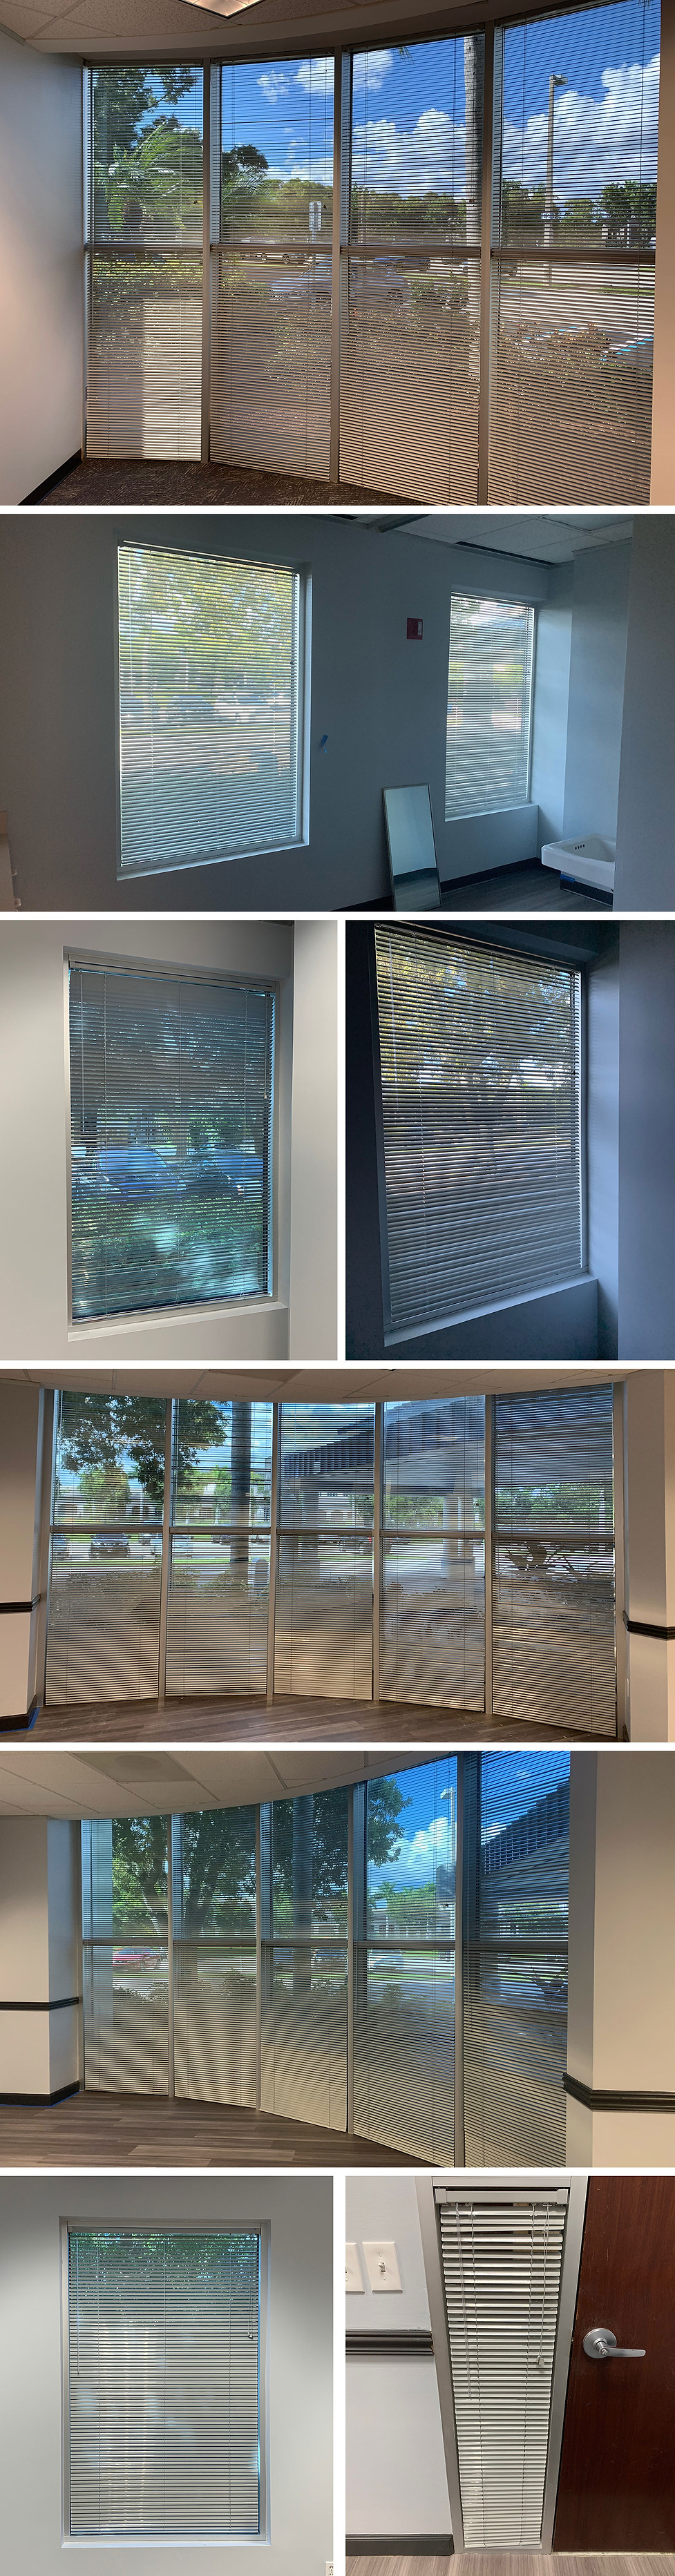 fort-myers-commercial-mini-blinds.jpg